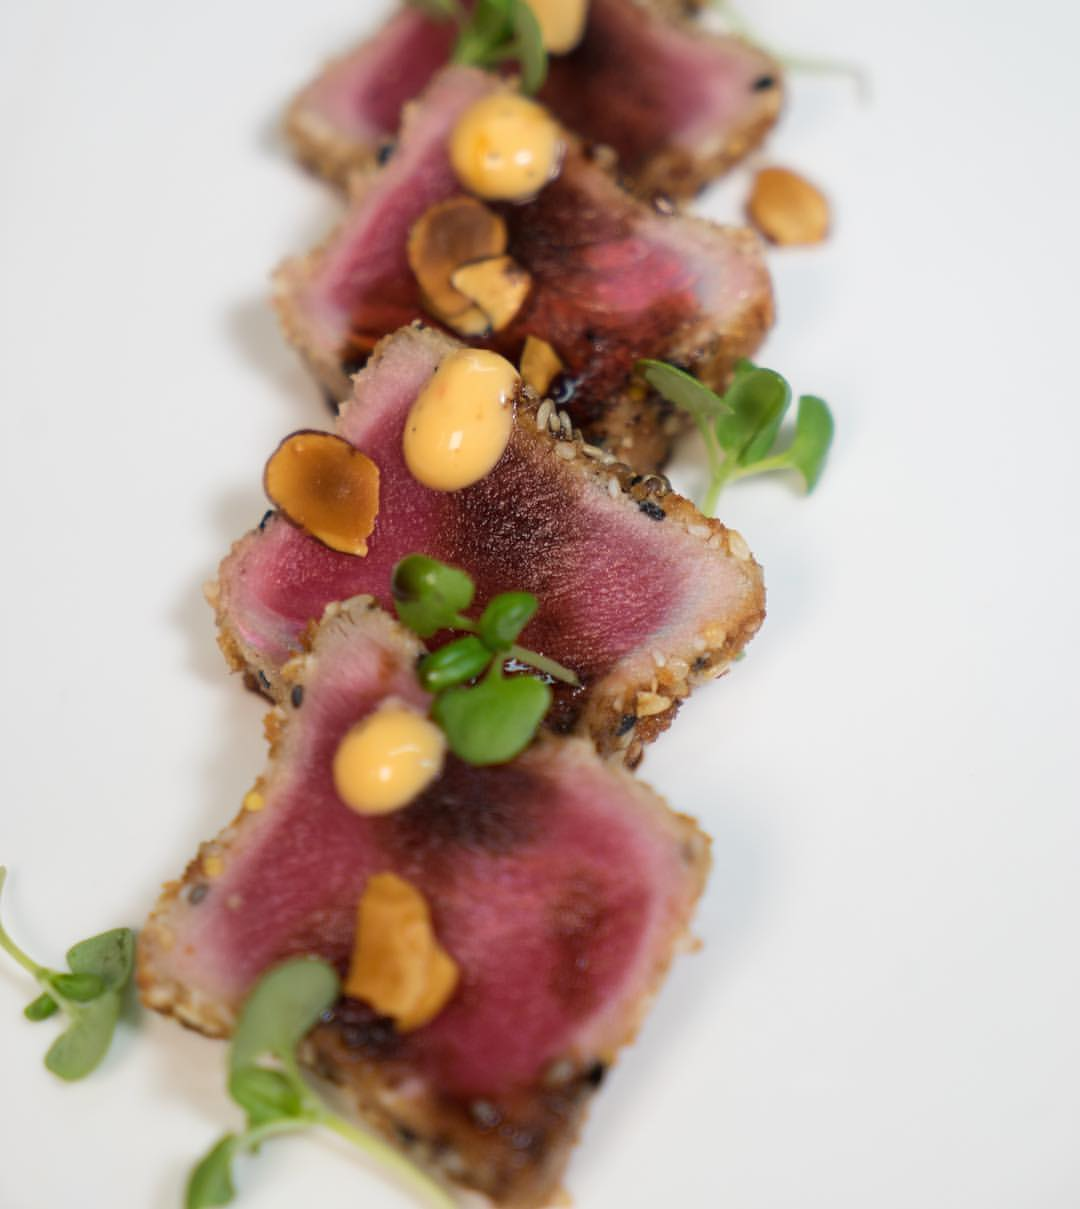 Miami Venue / Miami Catering - Tuna Tataki Appetizer